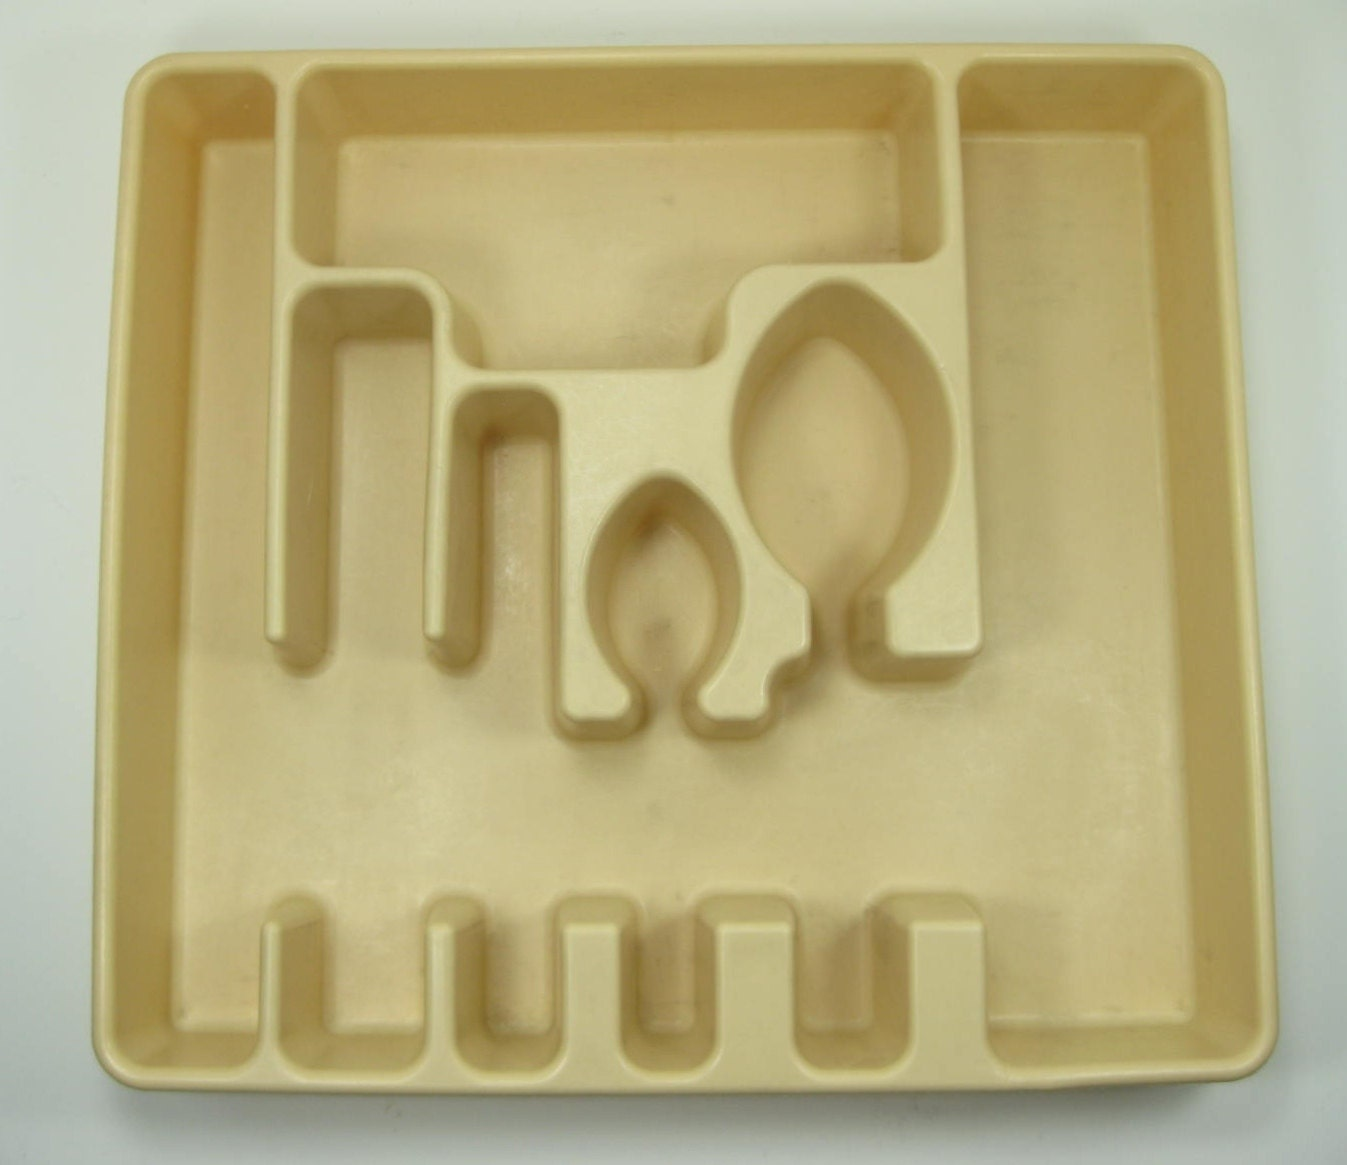 Popular items for cutlery tray on Etsy